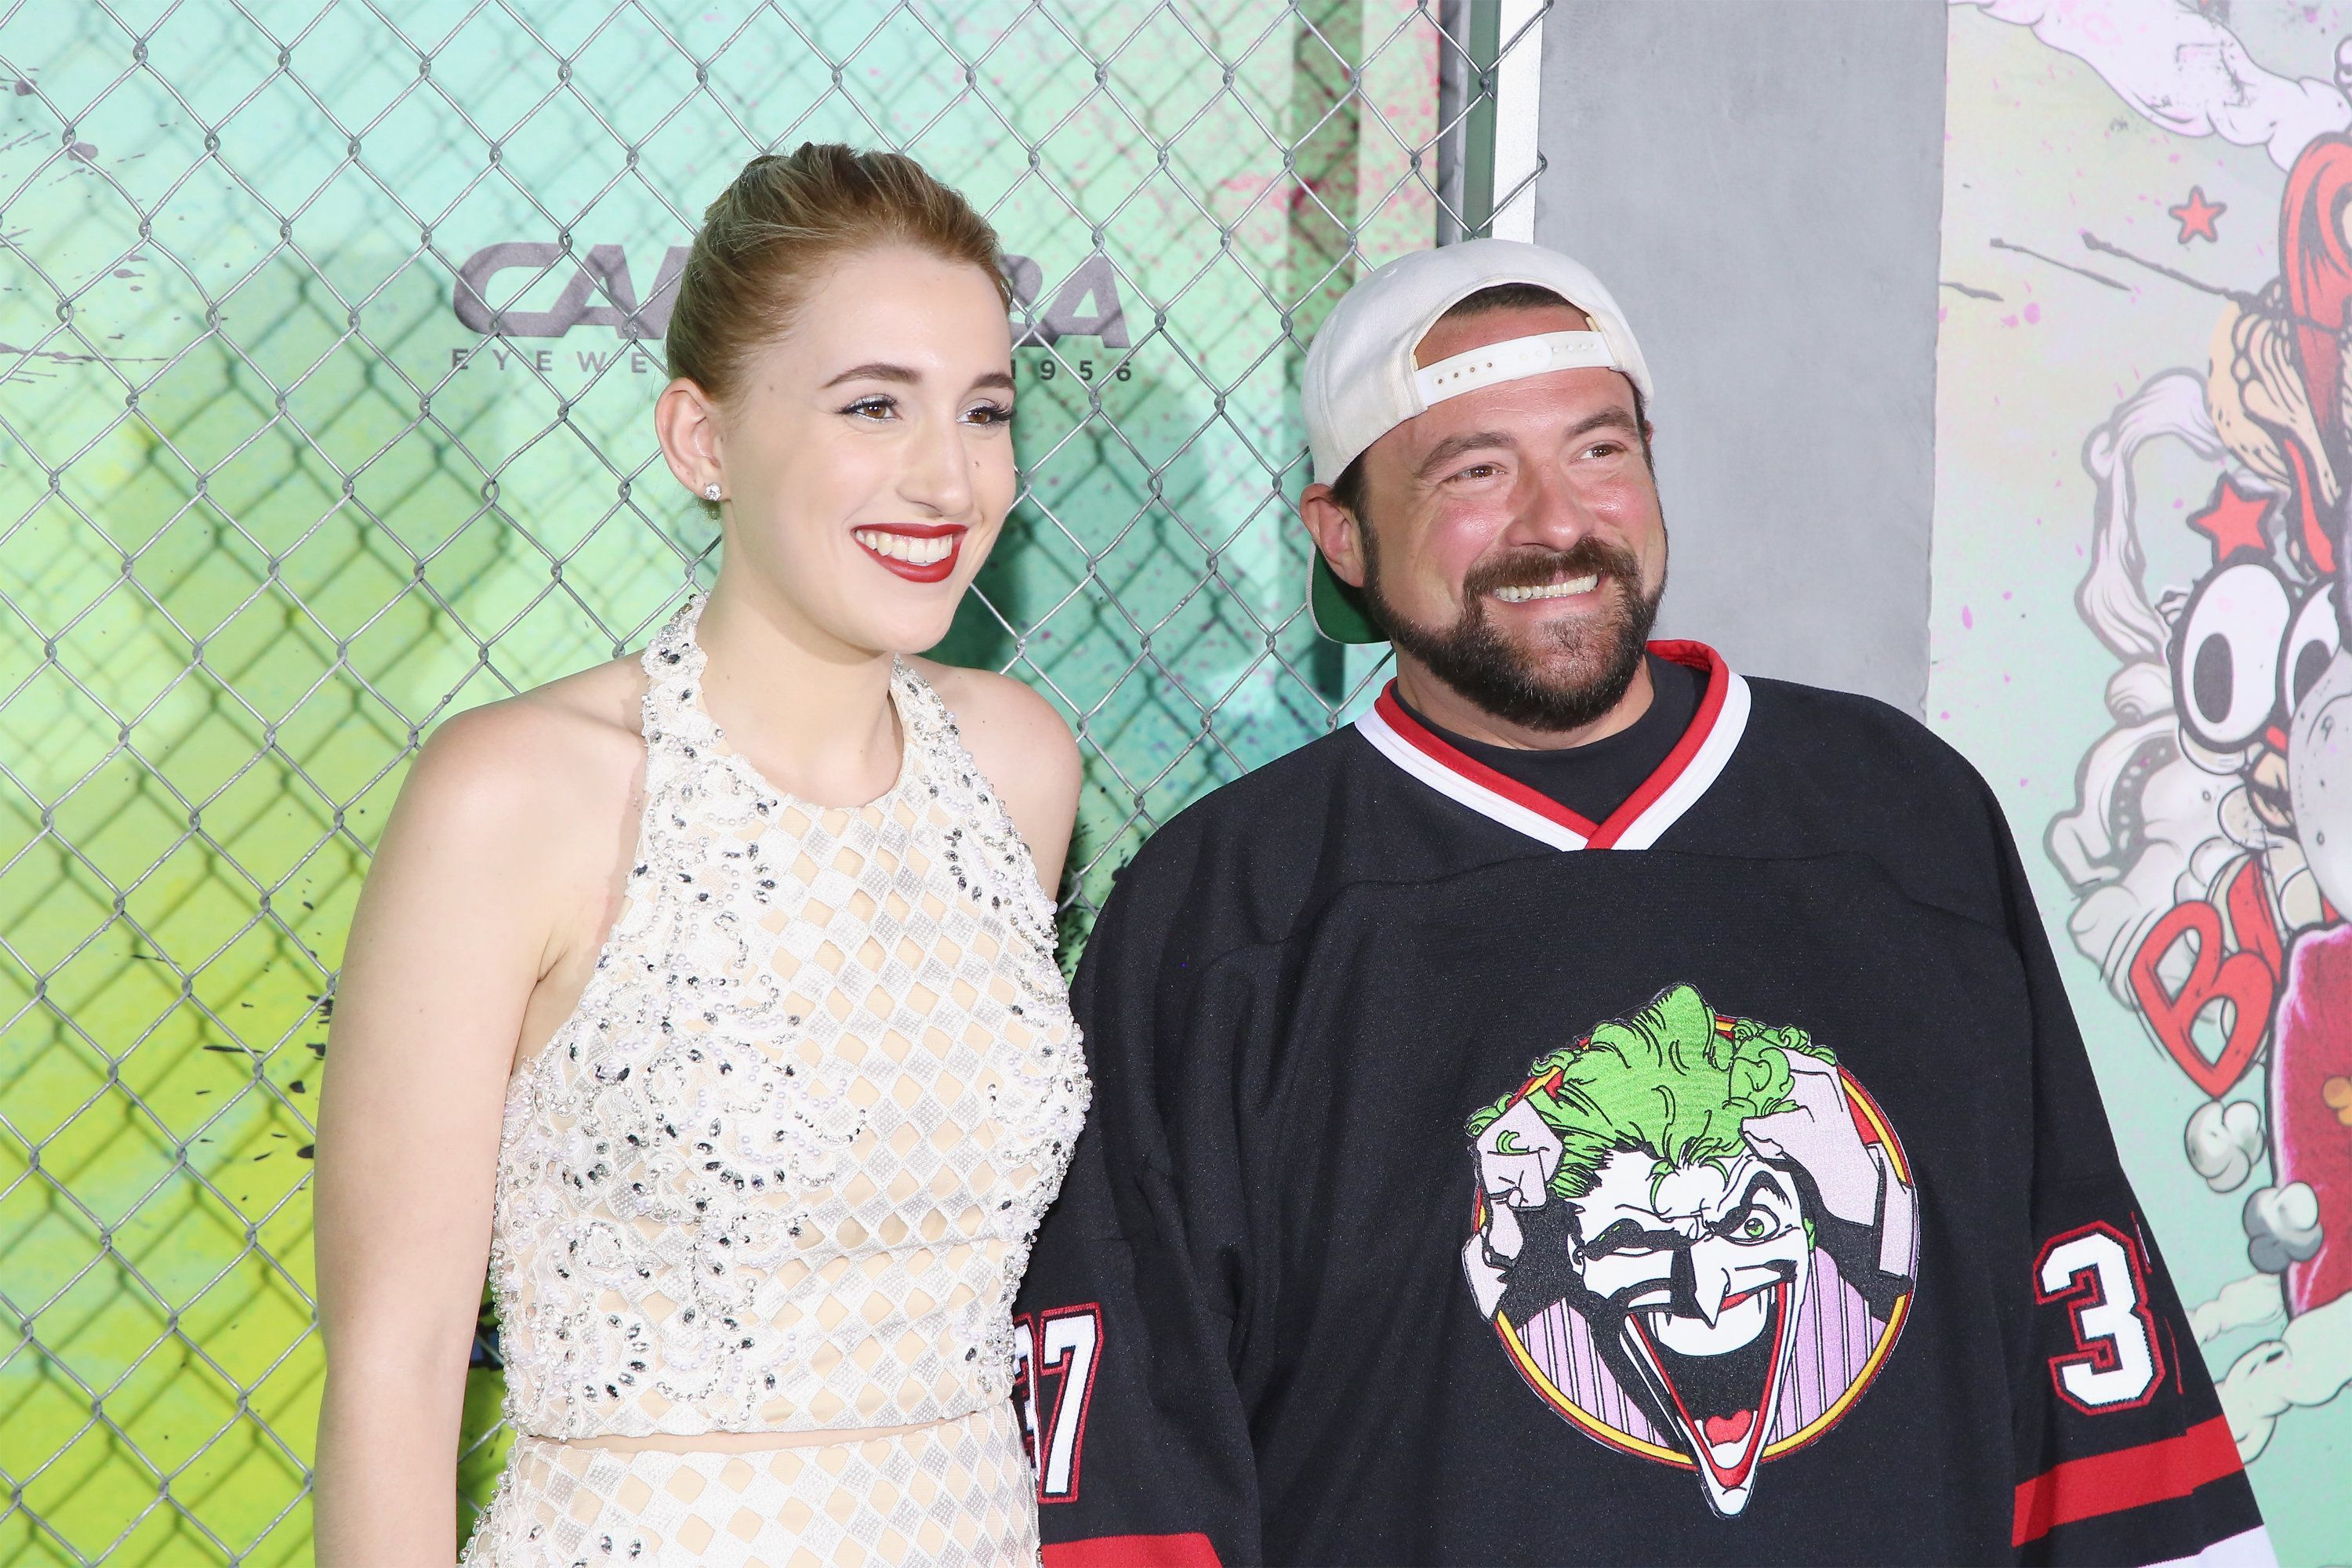 NEW YORK, NY - AUGUST 01:  Harley Quinn Smith and Kevin Smith attend the 'Suicide Squad' world premiere at The Beacon Theatre on August 1, 2016 in New York City.  (Photo by Mireya Acierto/FilmMagic)